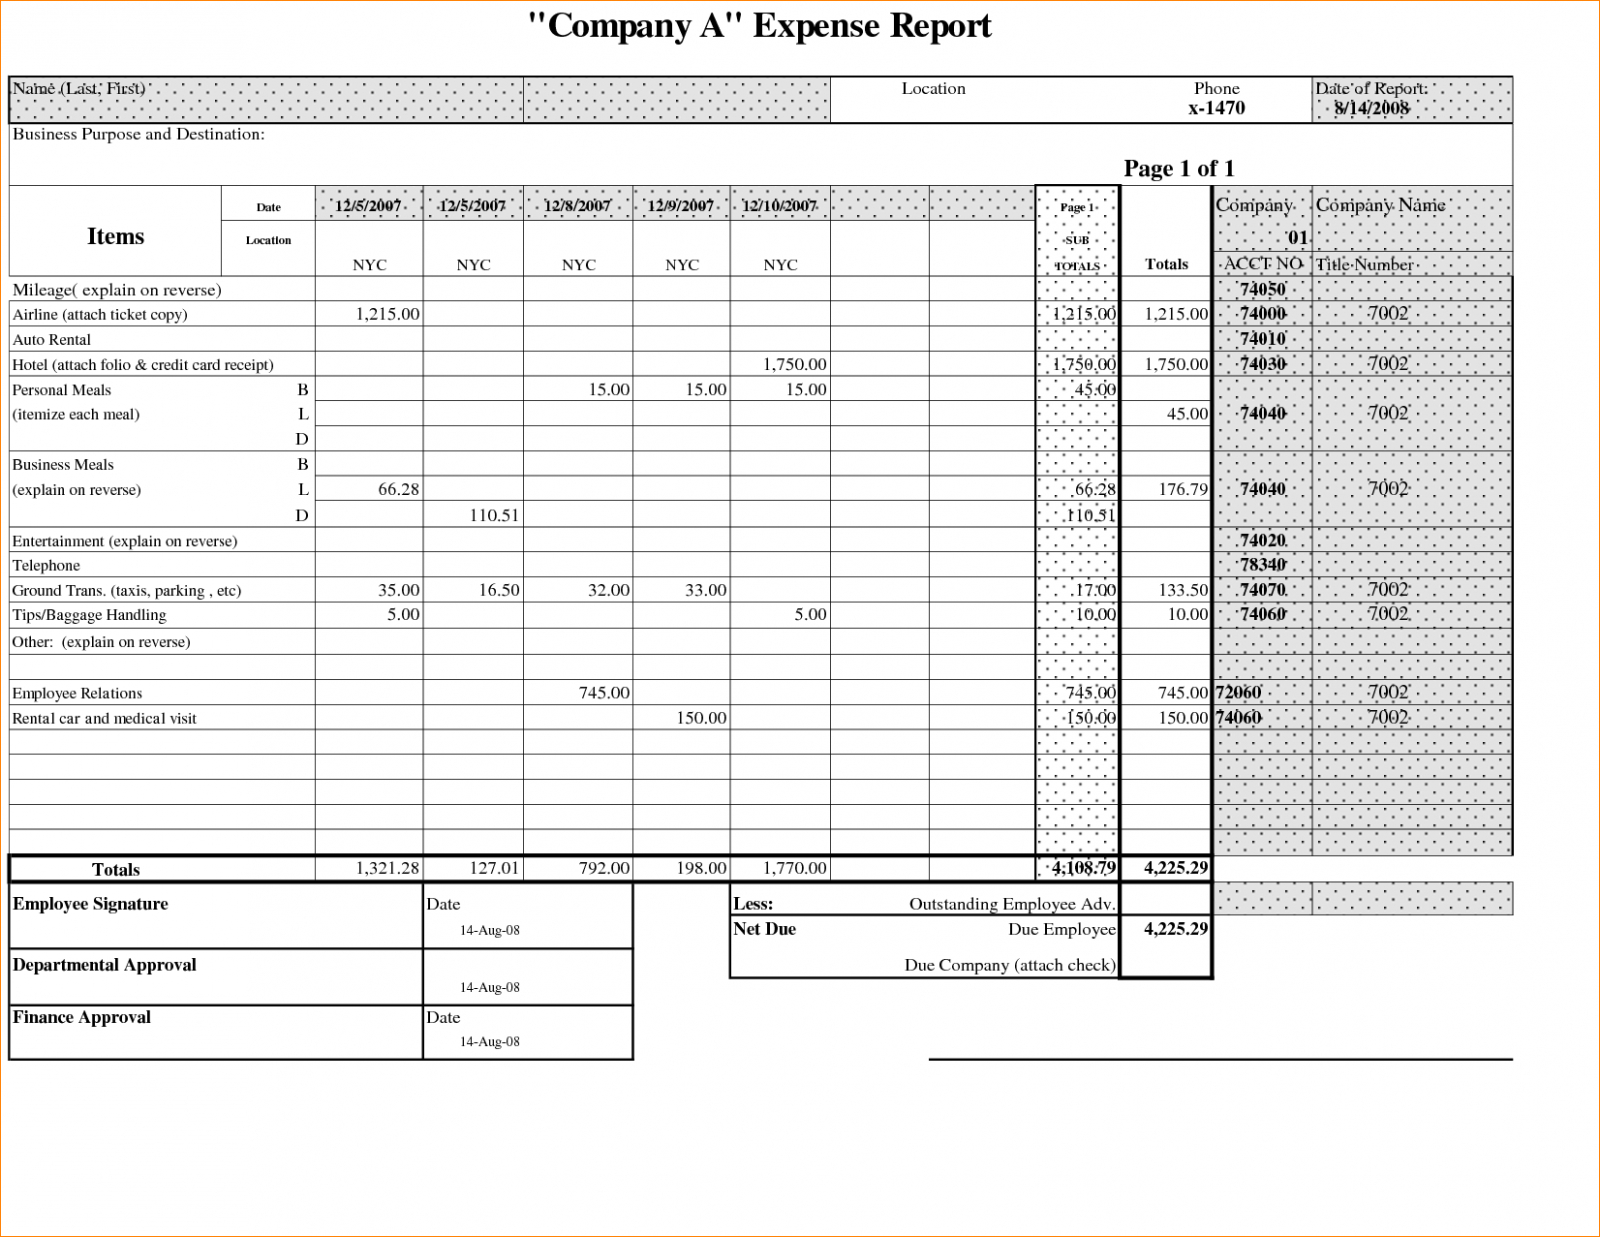 Expense Report Sample Example Of Company Budget Spreadsheet To Company Expense Report